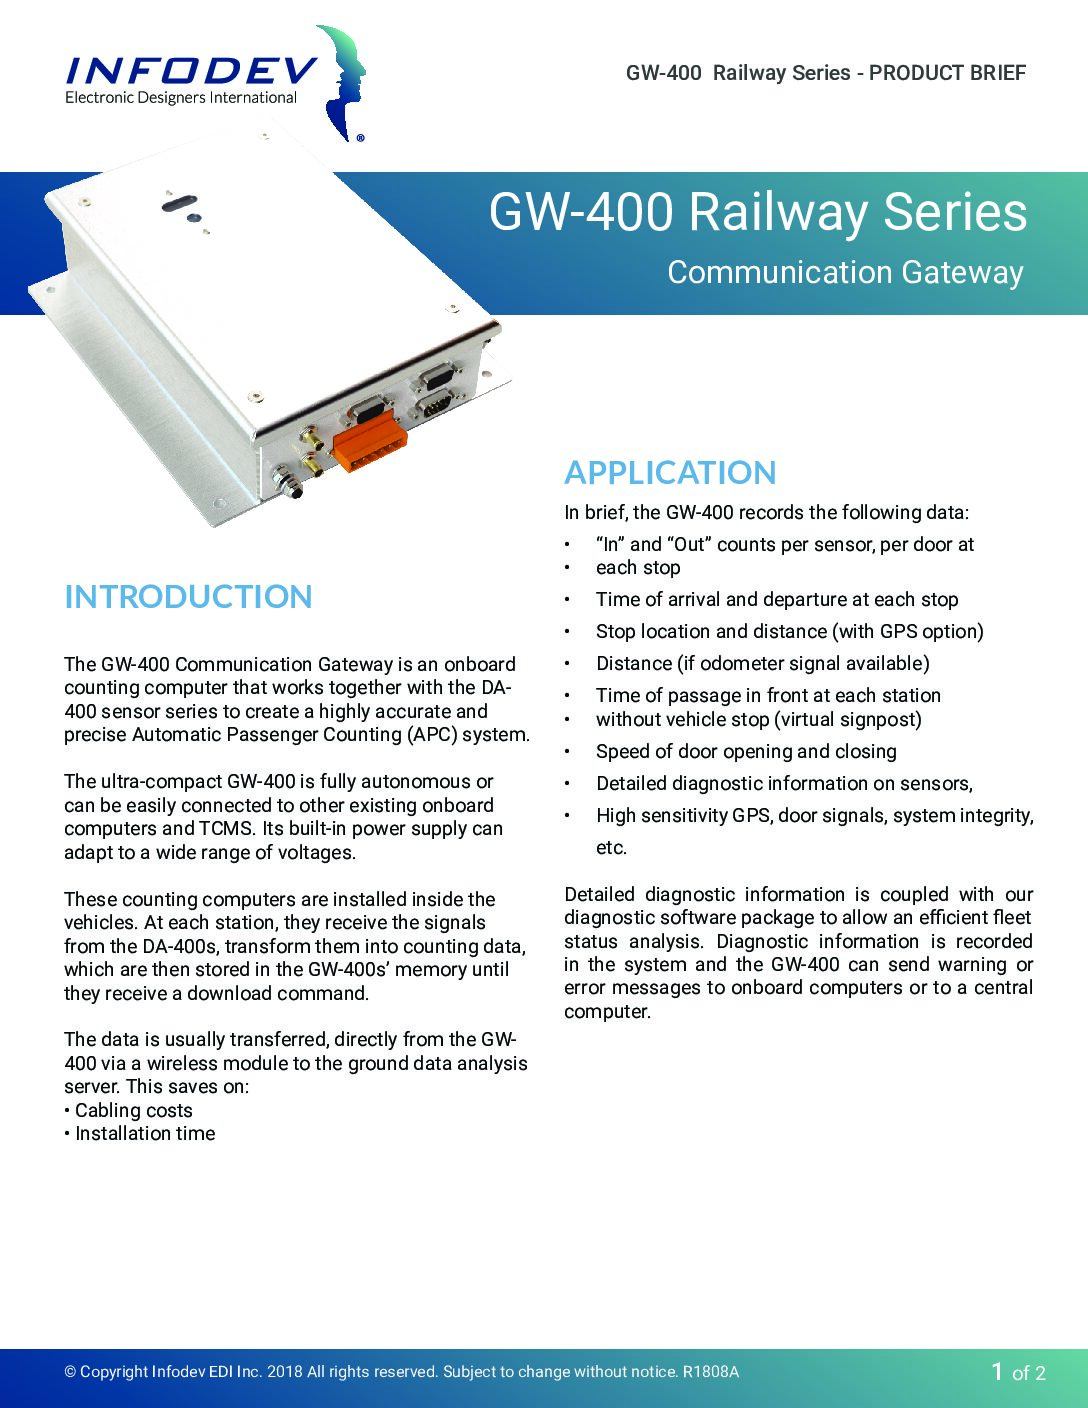 GW-400 Product Brief for Rail